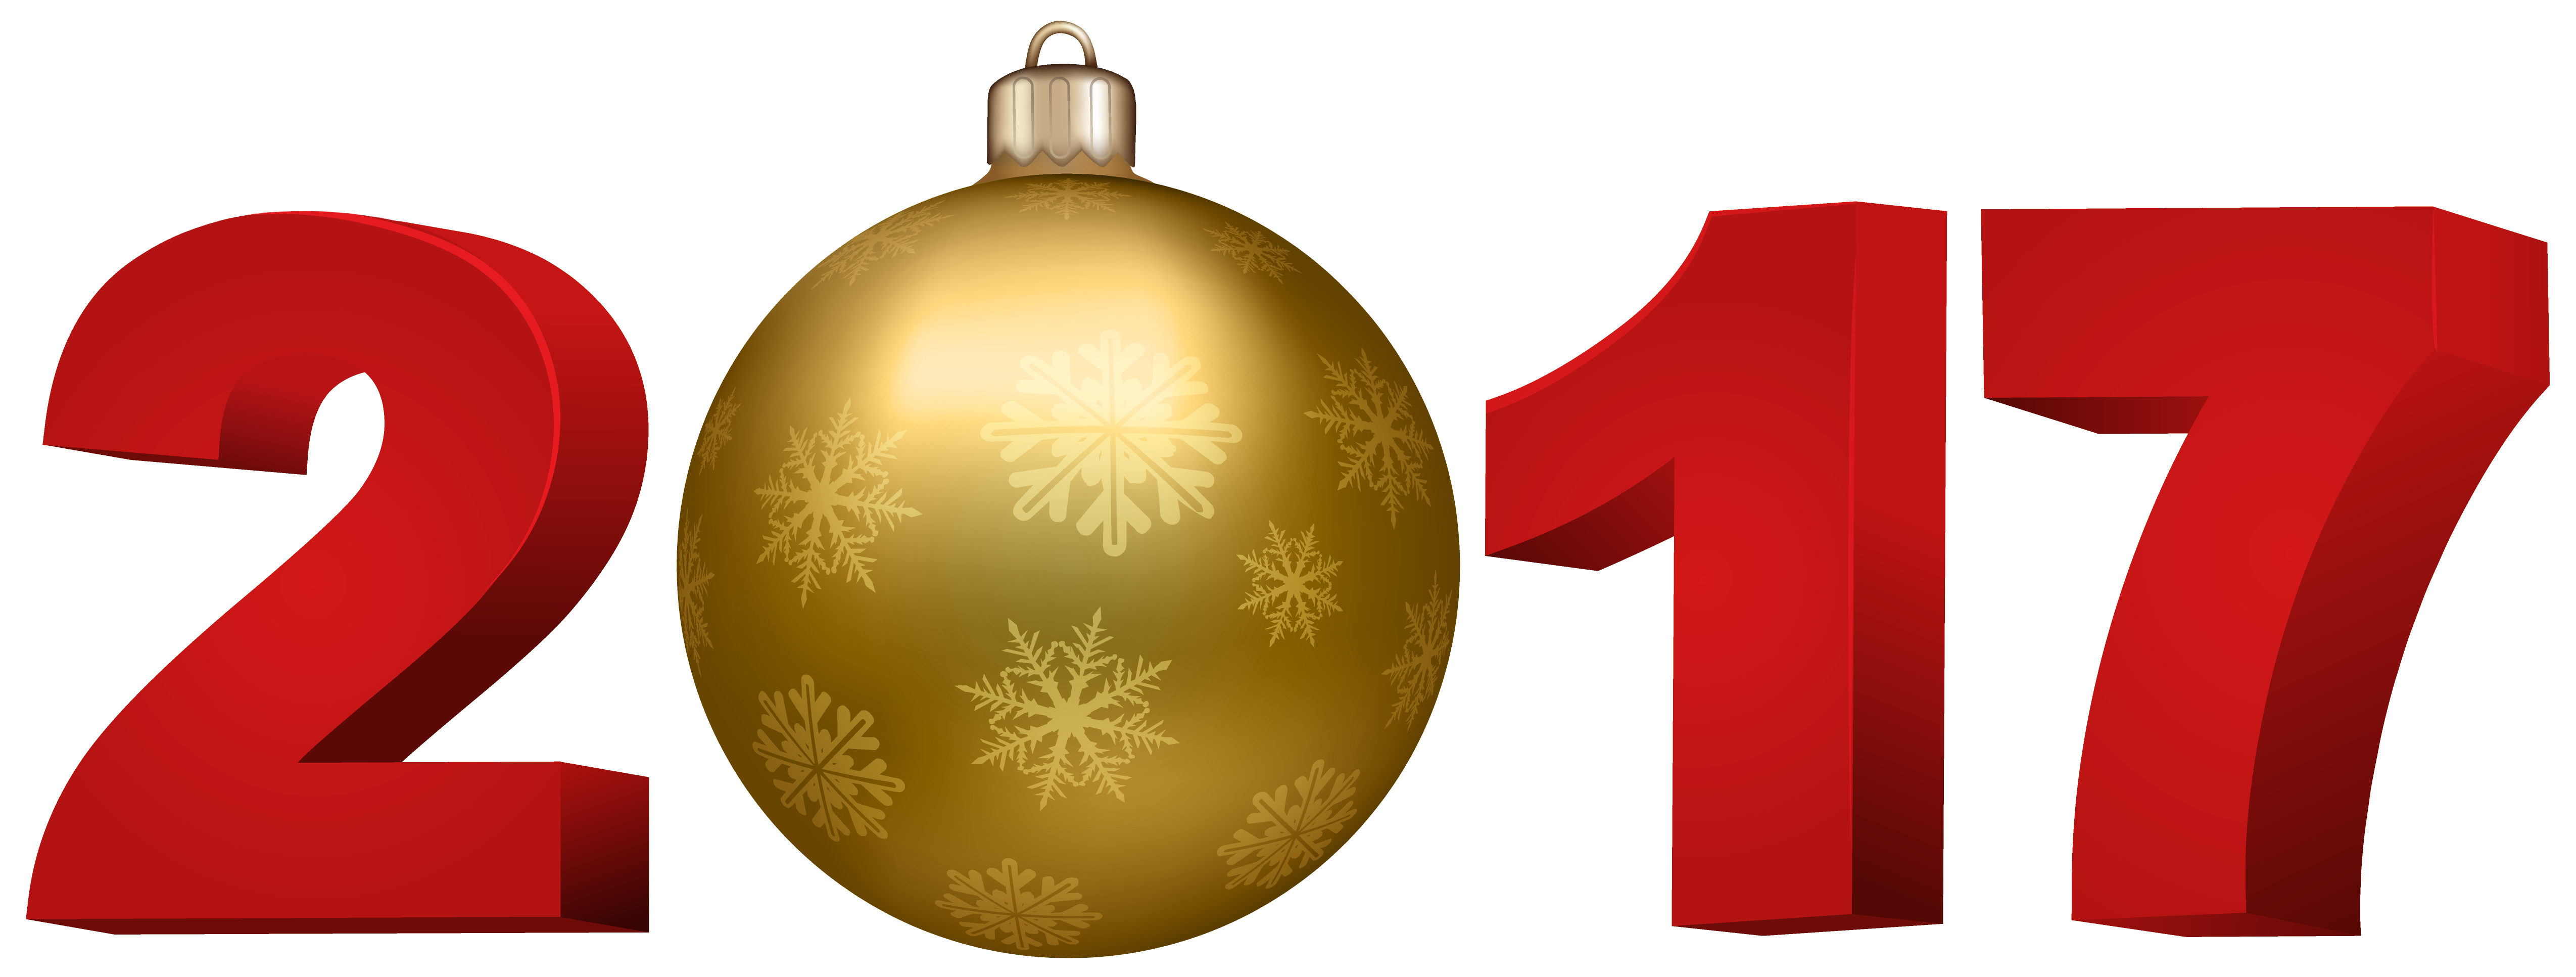 2017 clipart christmas. Transparent png image gallery